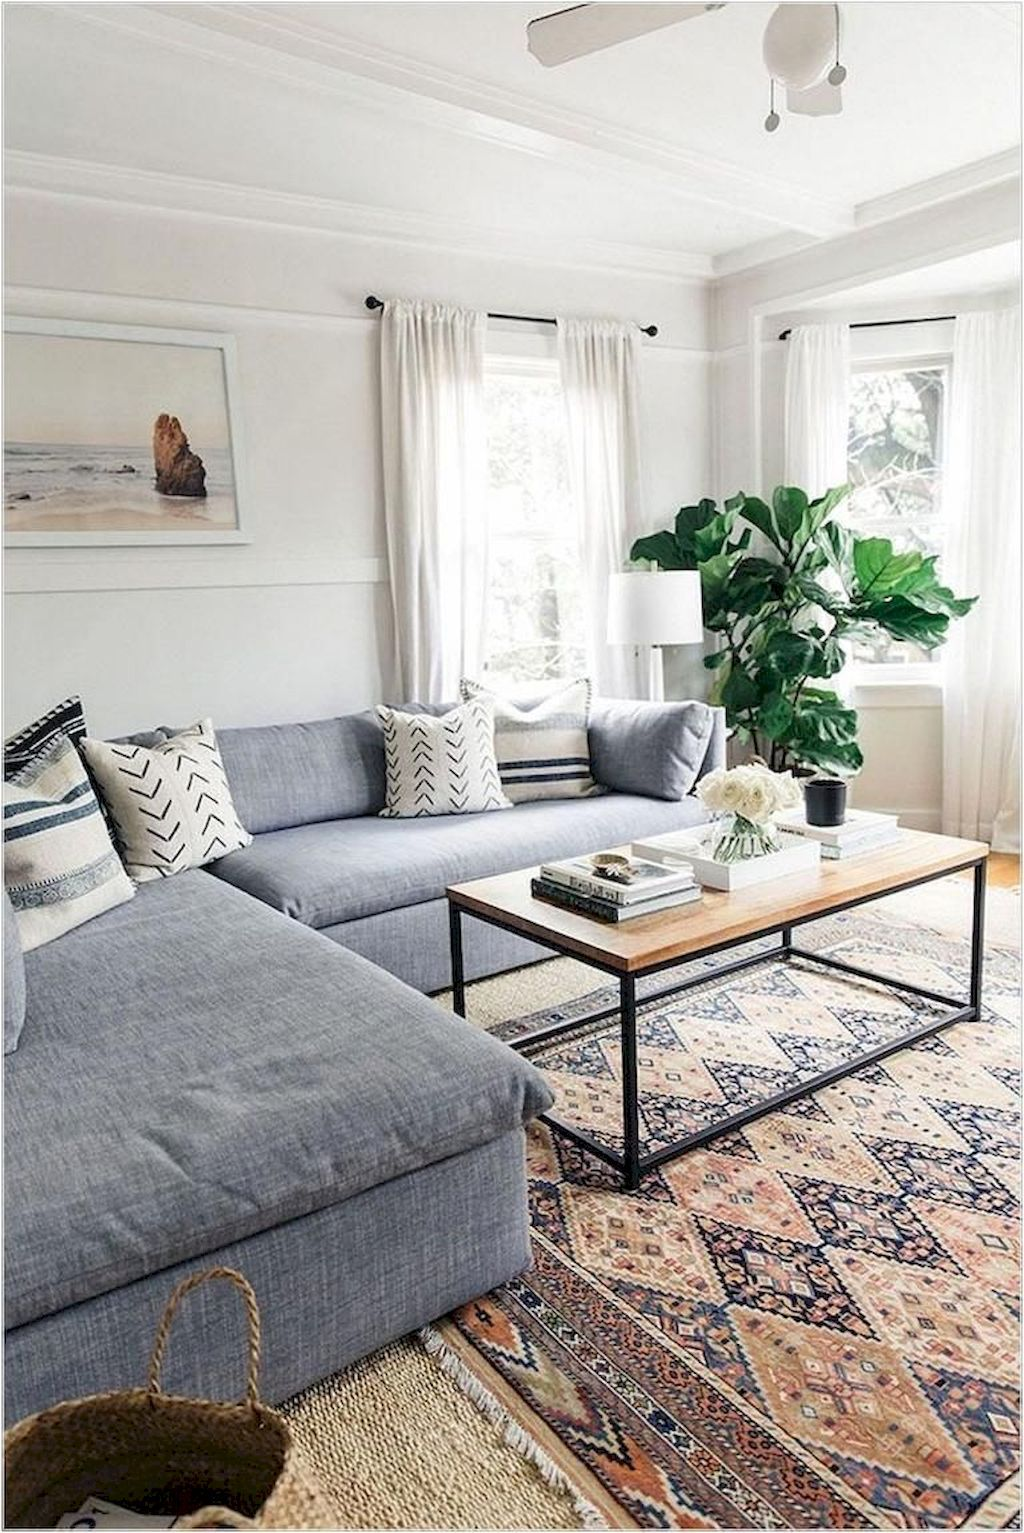 80 Beautiful Apartment Decorating Ideas On A Budget Living Room